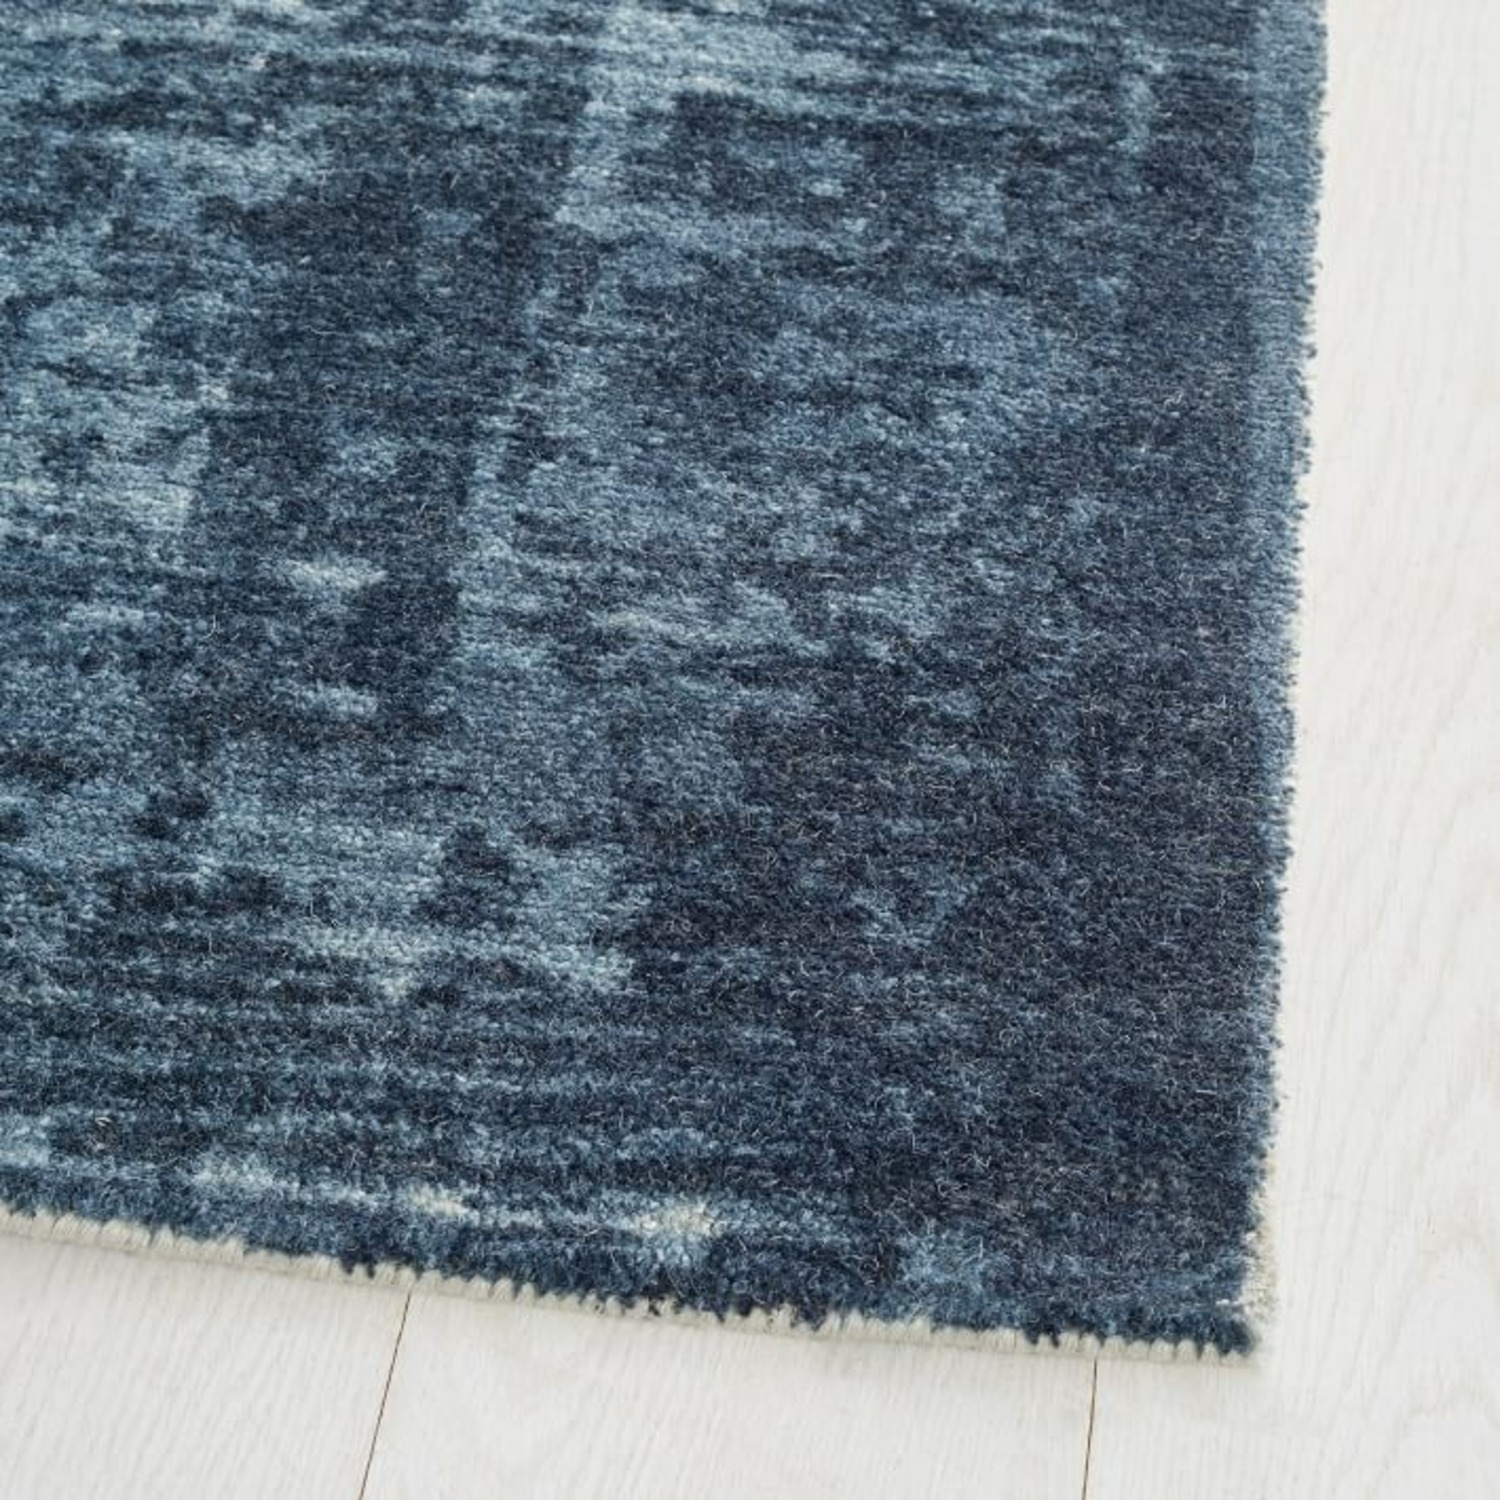 West Elm Distressed Arabesque Wool Rug - image-2